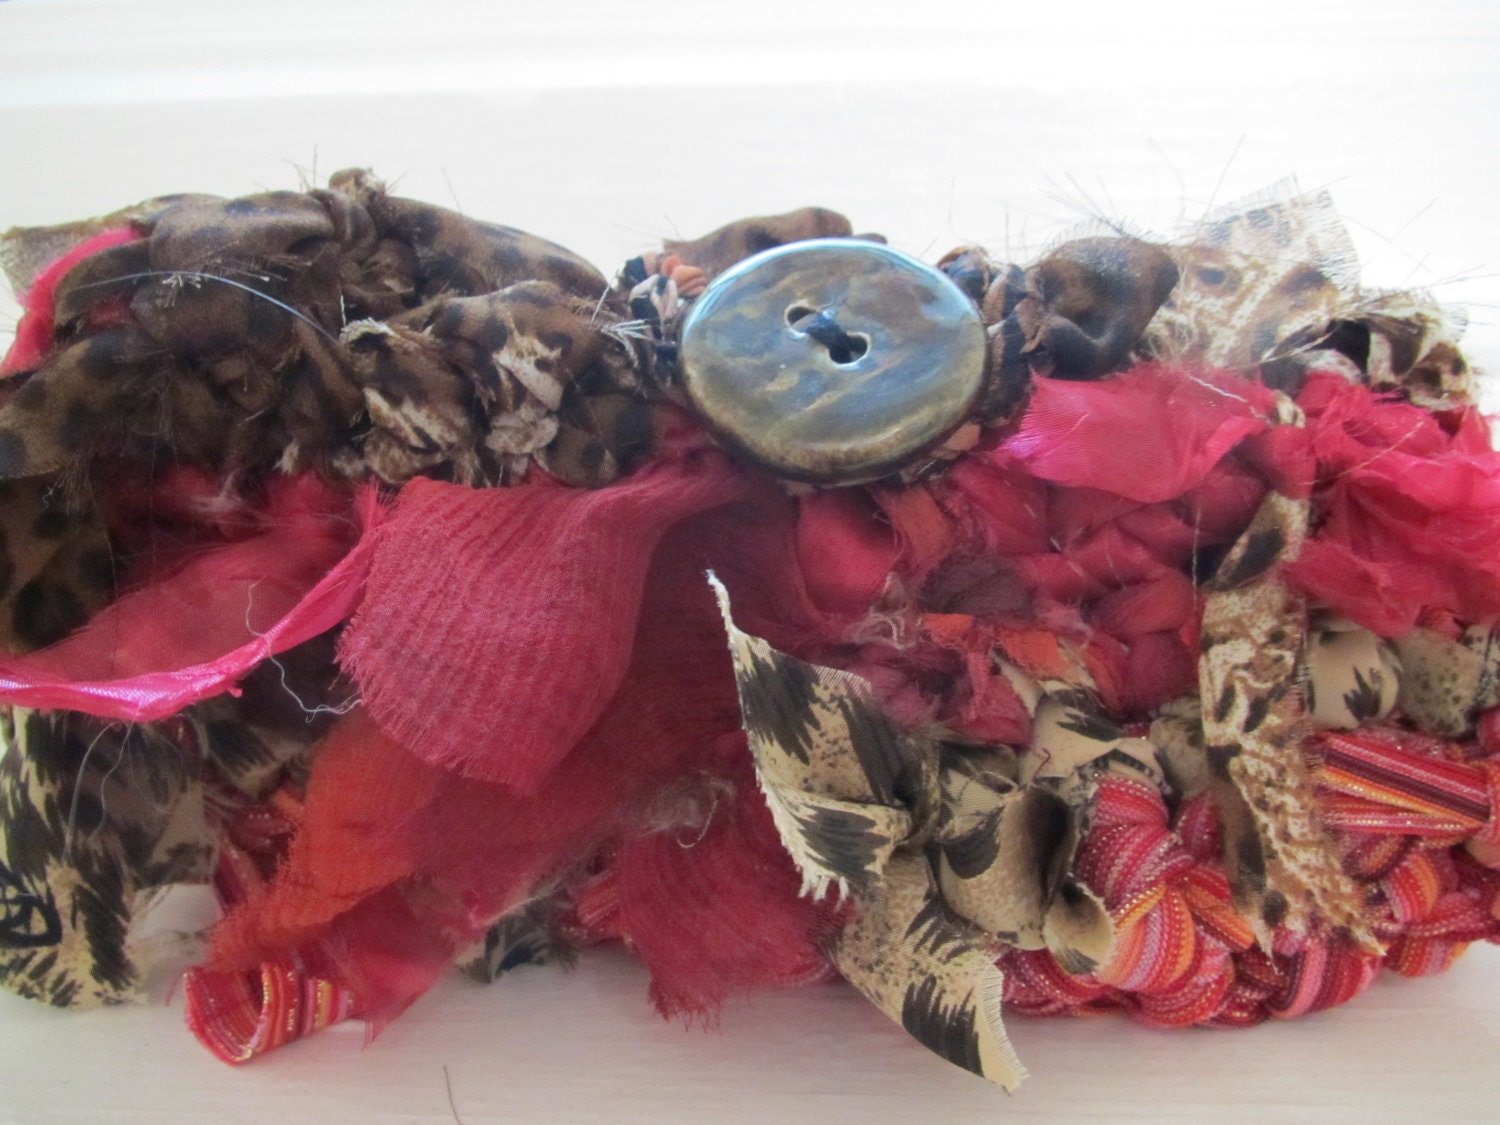 "One of a Kind ""Mini Clutch"" style TeeBag, Pinks and Browns with Animal Print created from recycled apparel."